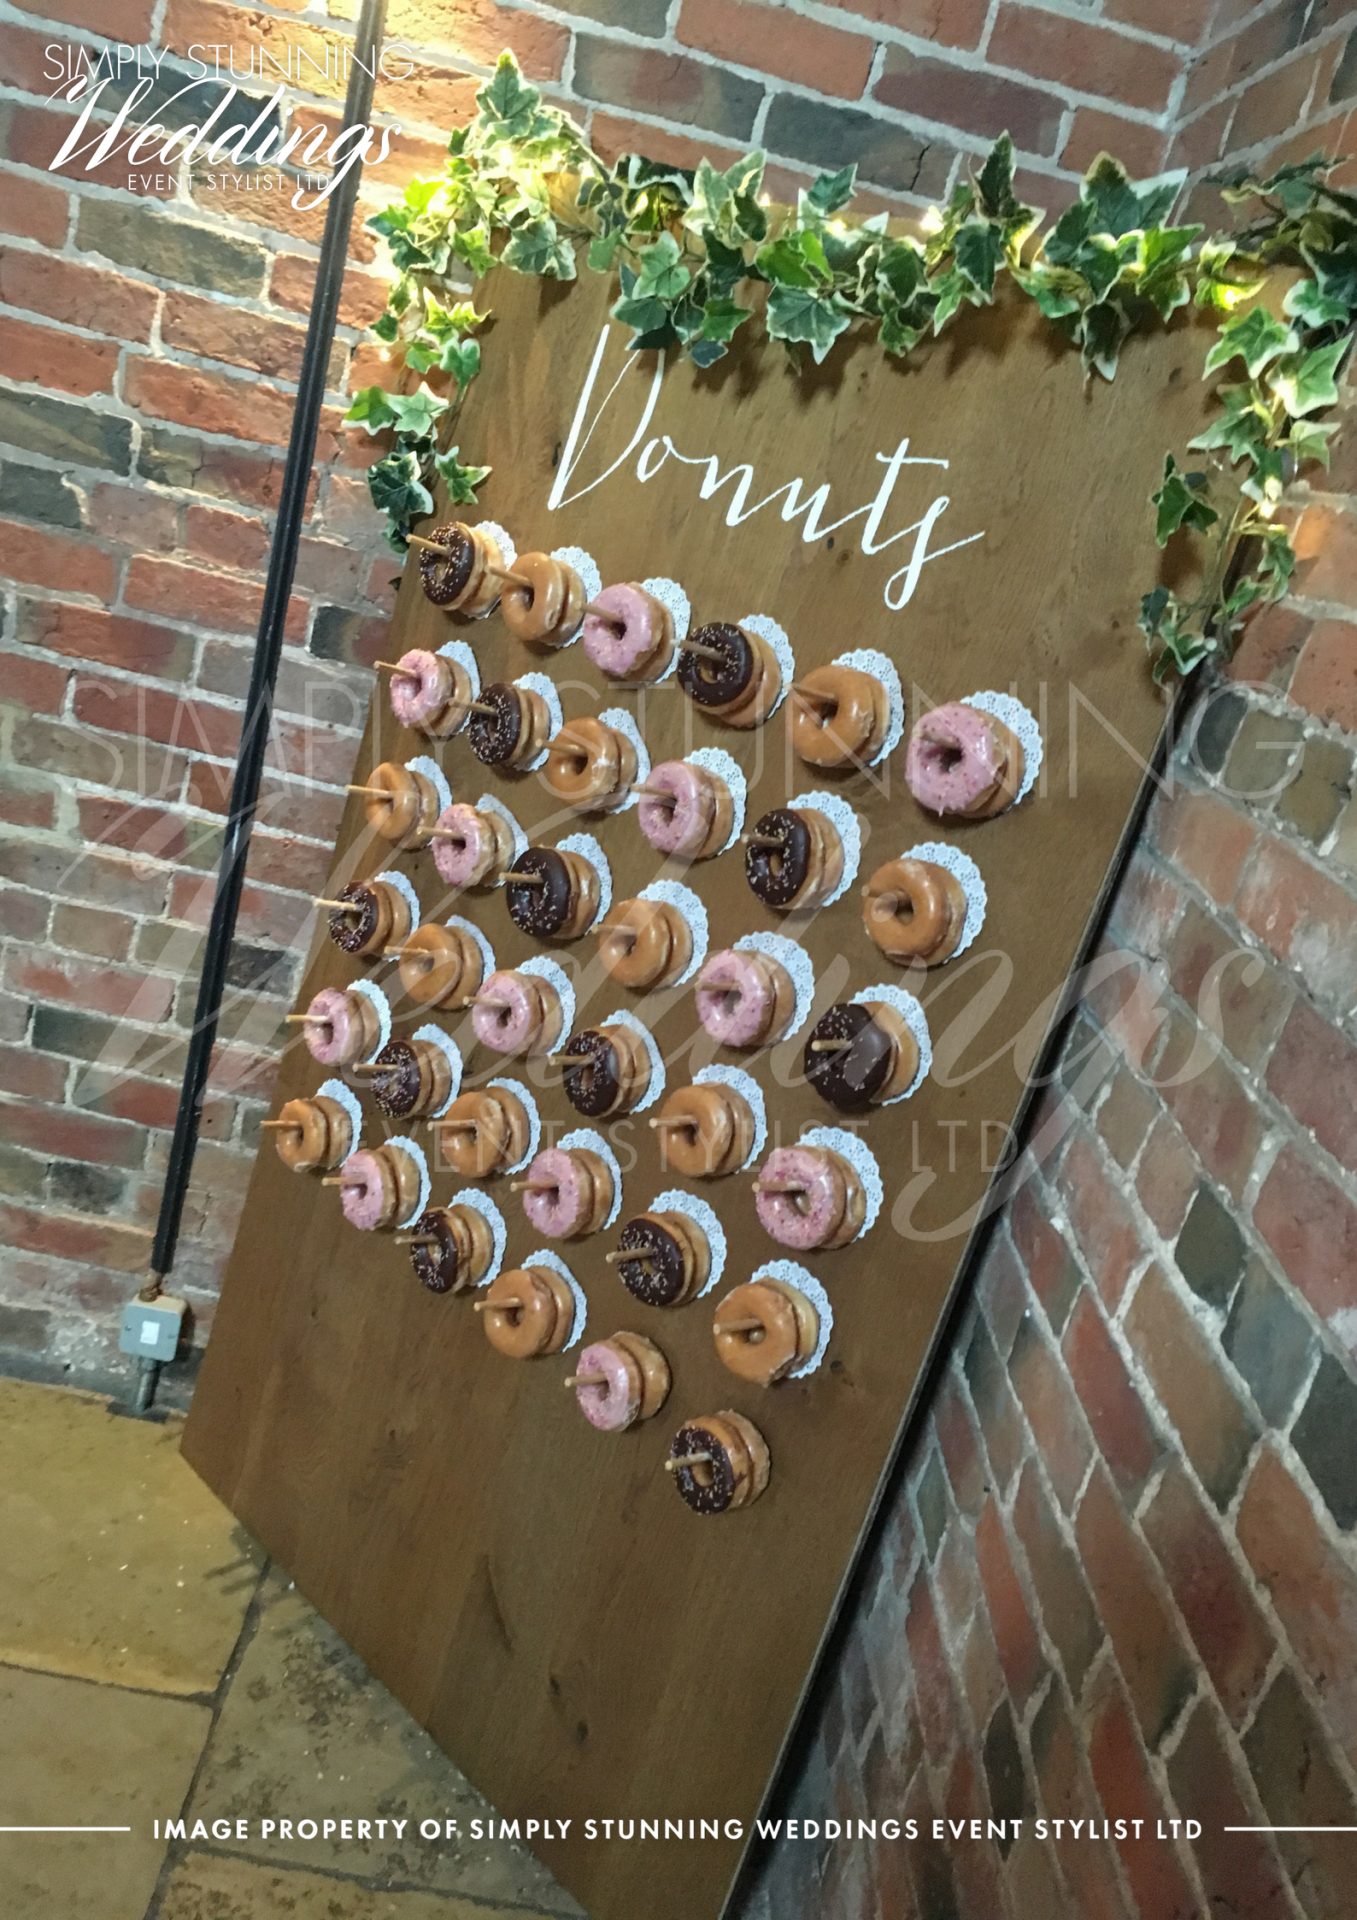 Donut Wall HireSimply Stunning Weddings - Event Sylist Ltd. Venue Dresser. Solihull